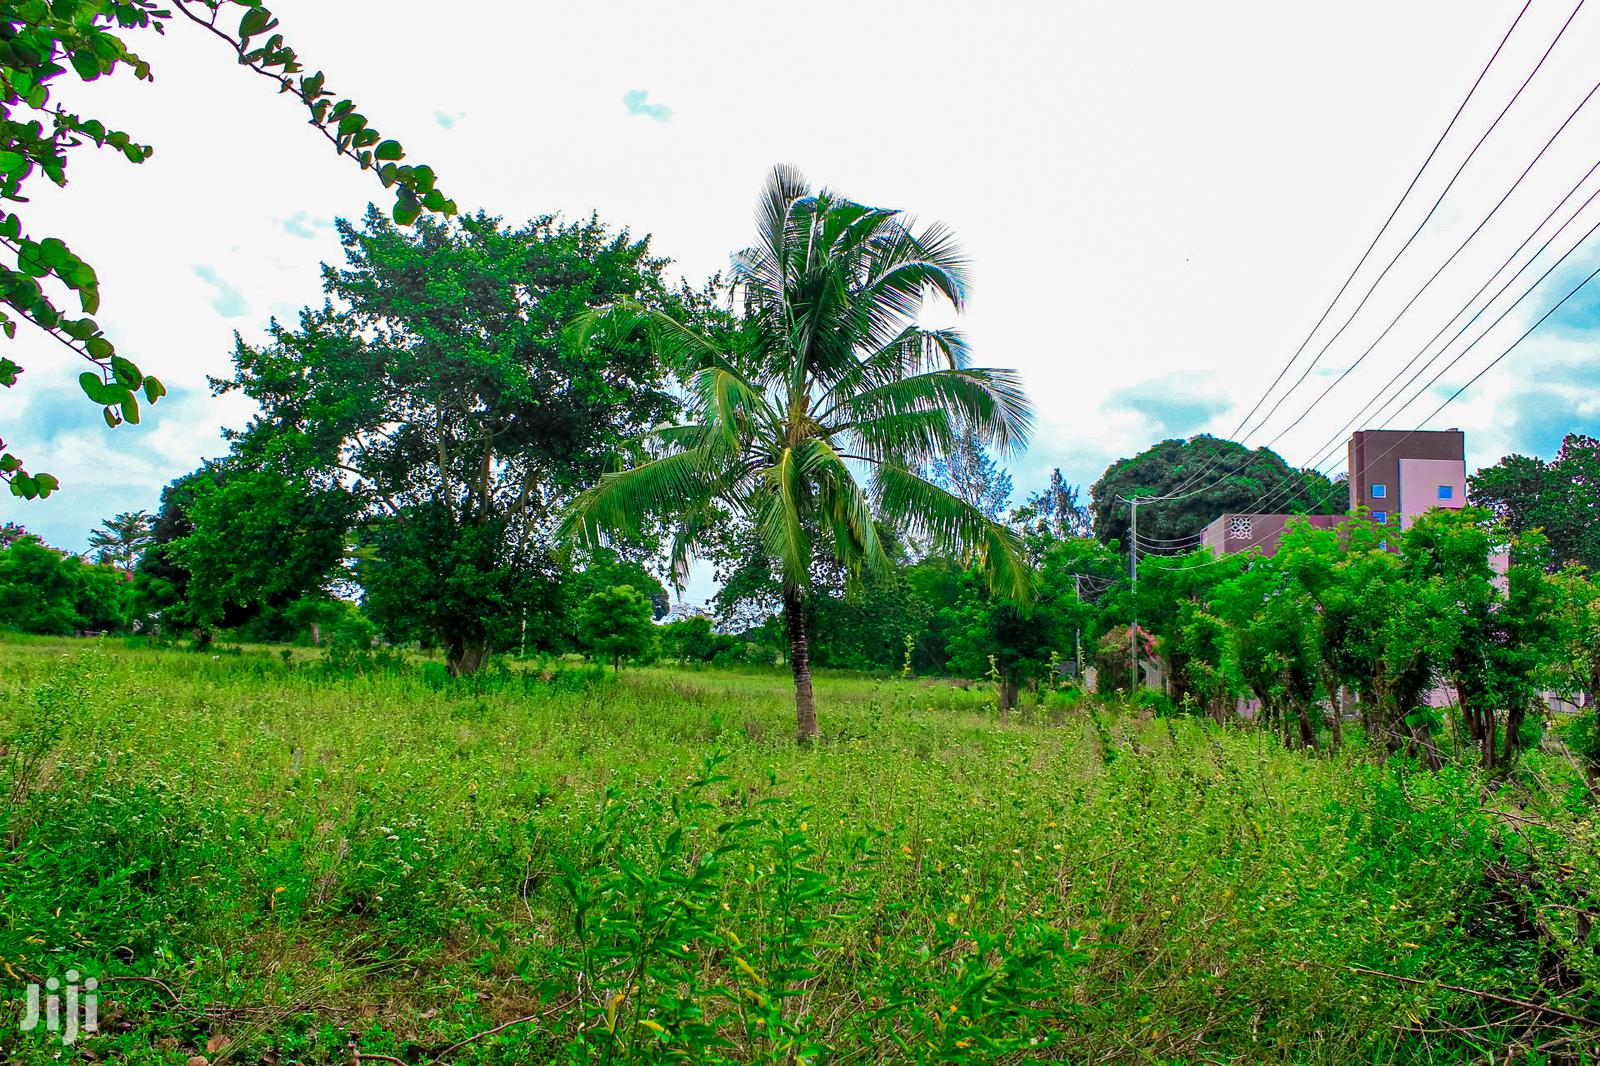 Mtwapa Plots for Sale(50 by 100) at 2.5M